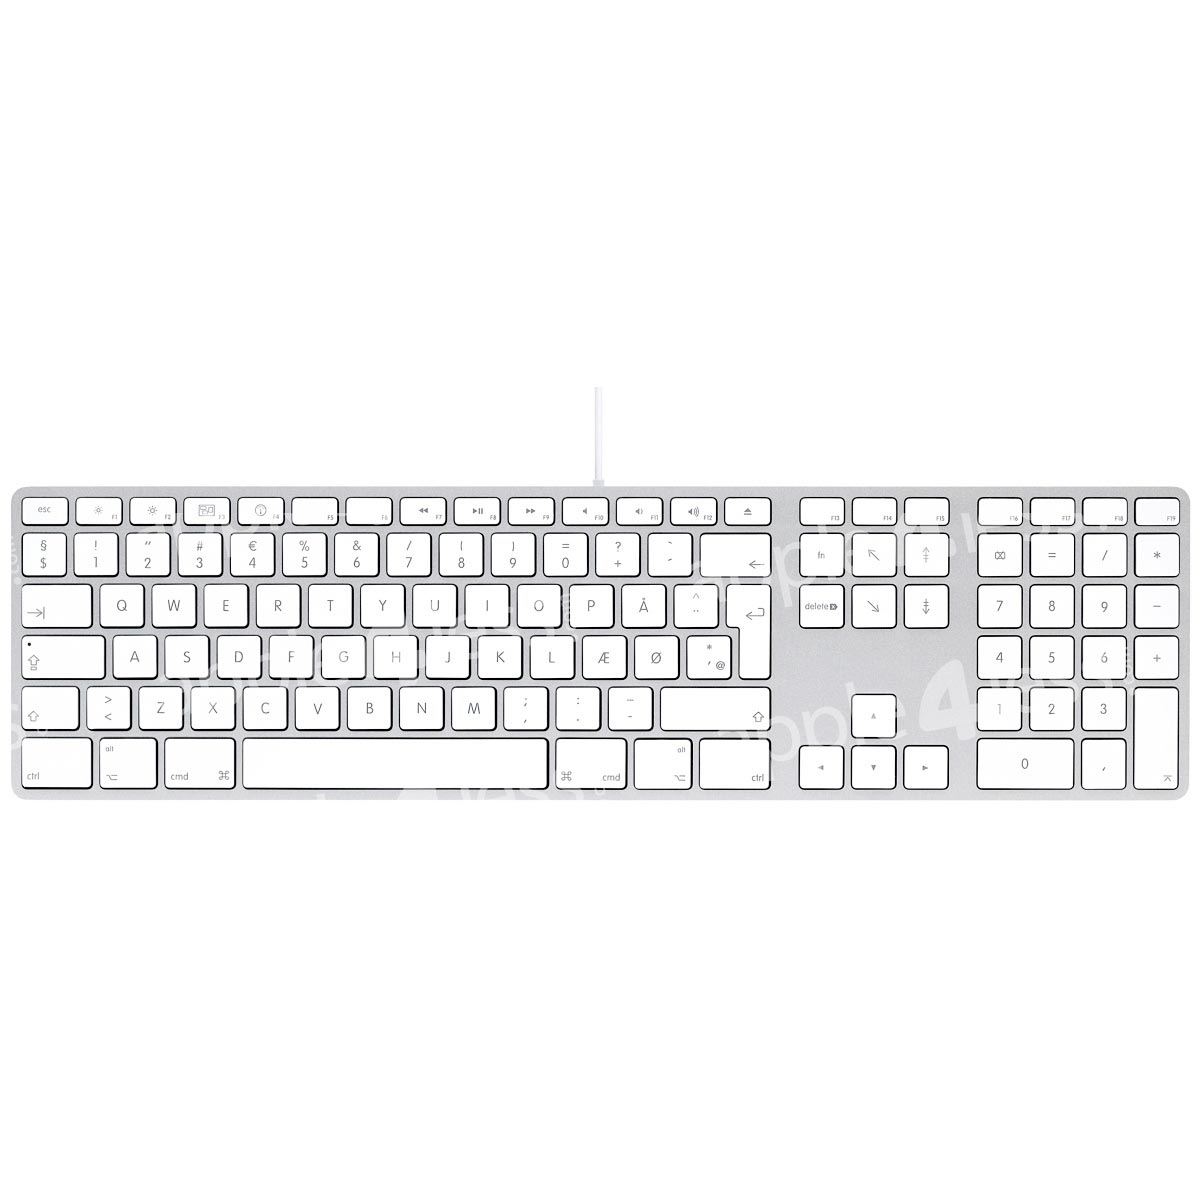 Apple Aluminium Keyboard, USB Extended, Danish